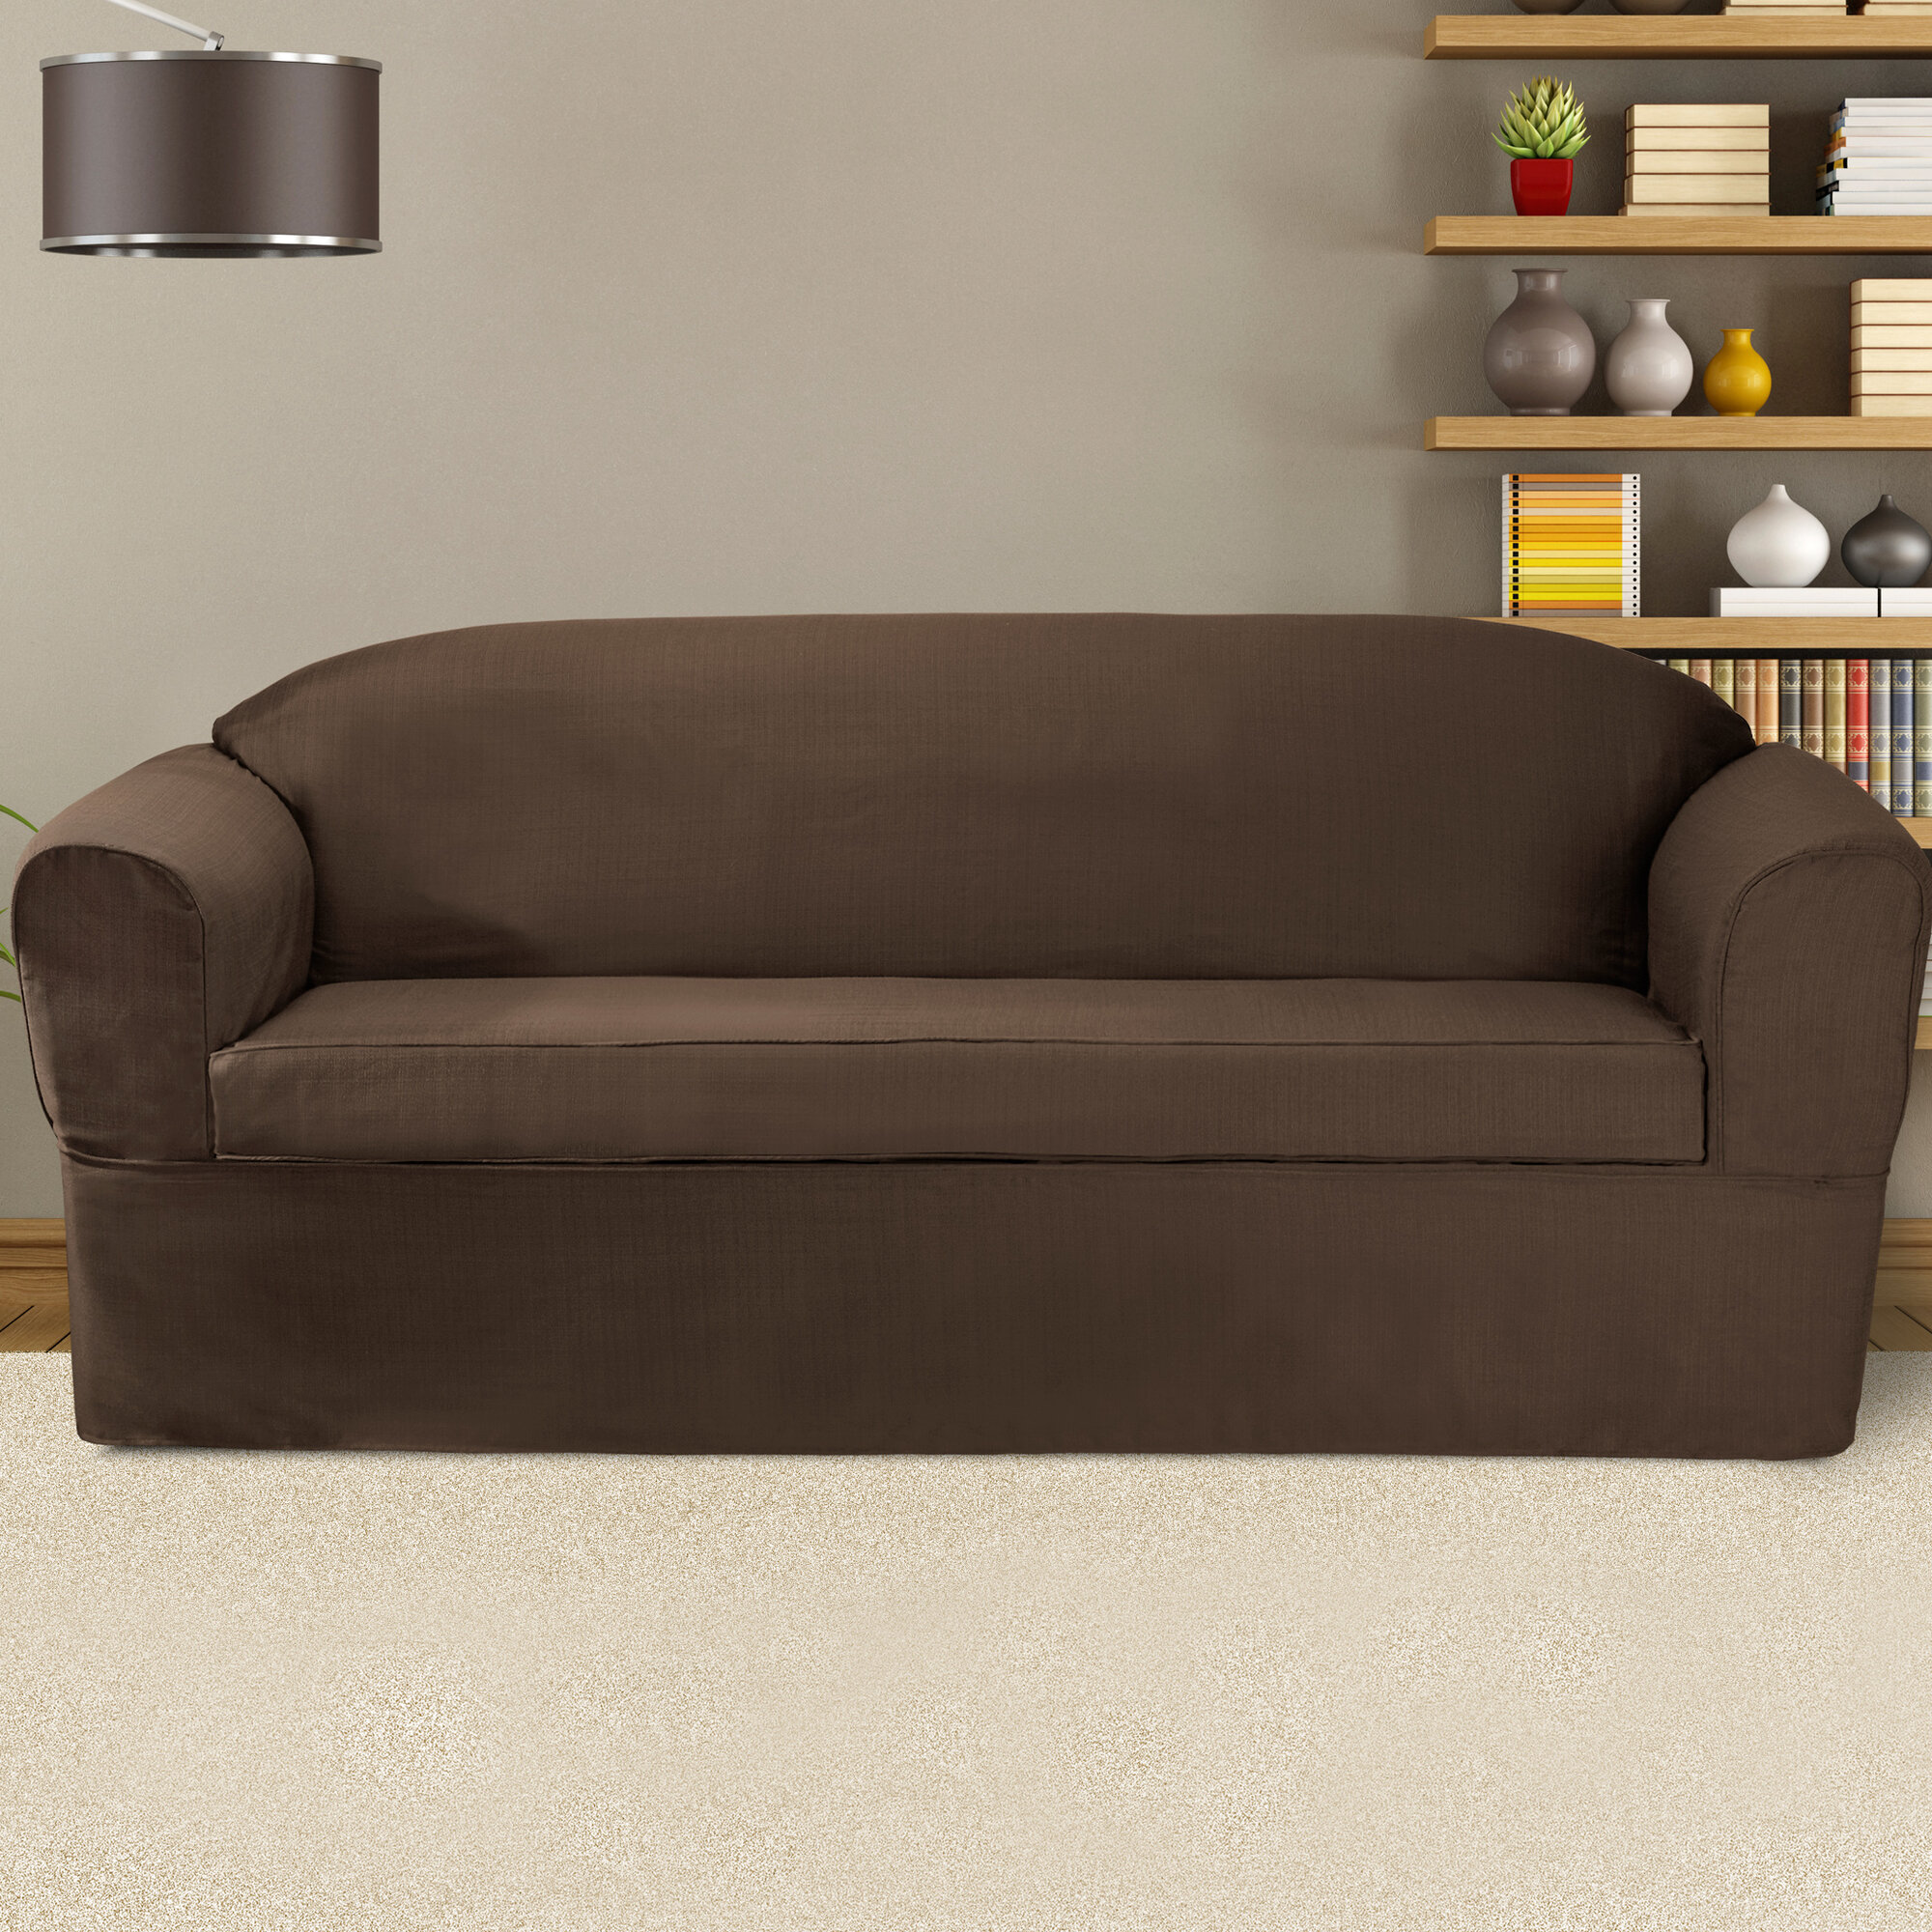 Sofa Slipcover With Separate Cushion Covers: CoverWorks Bayleigh Sofa Cushion Slipcover